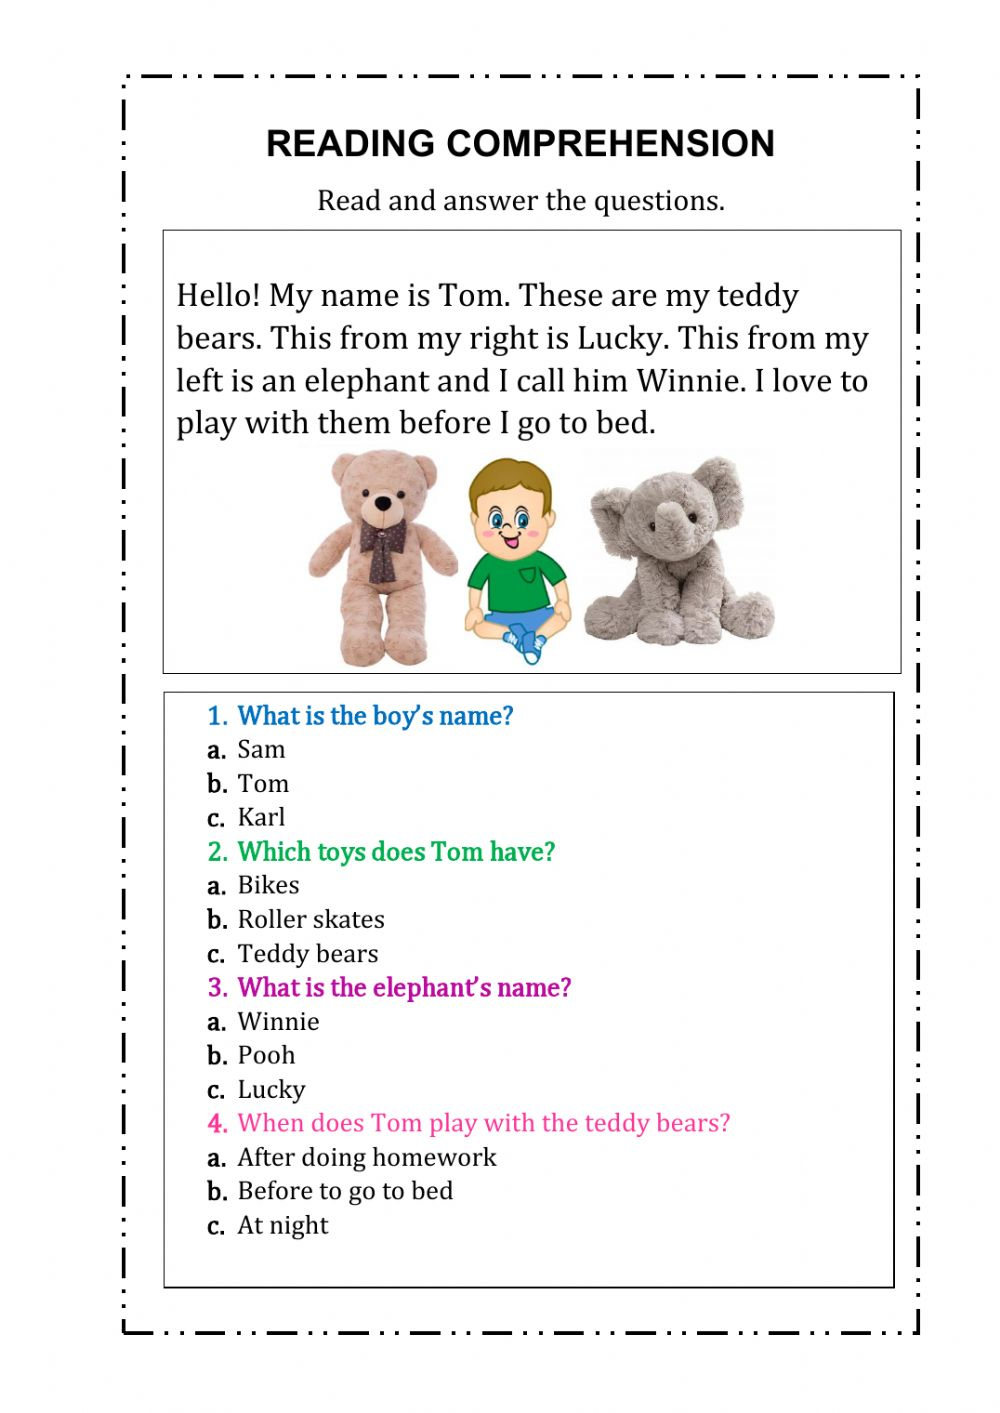 medium resolution of Reading comprehension online exercise for First Grade